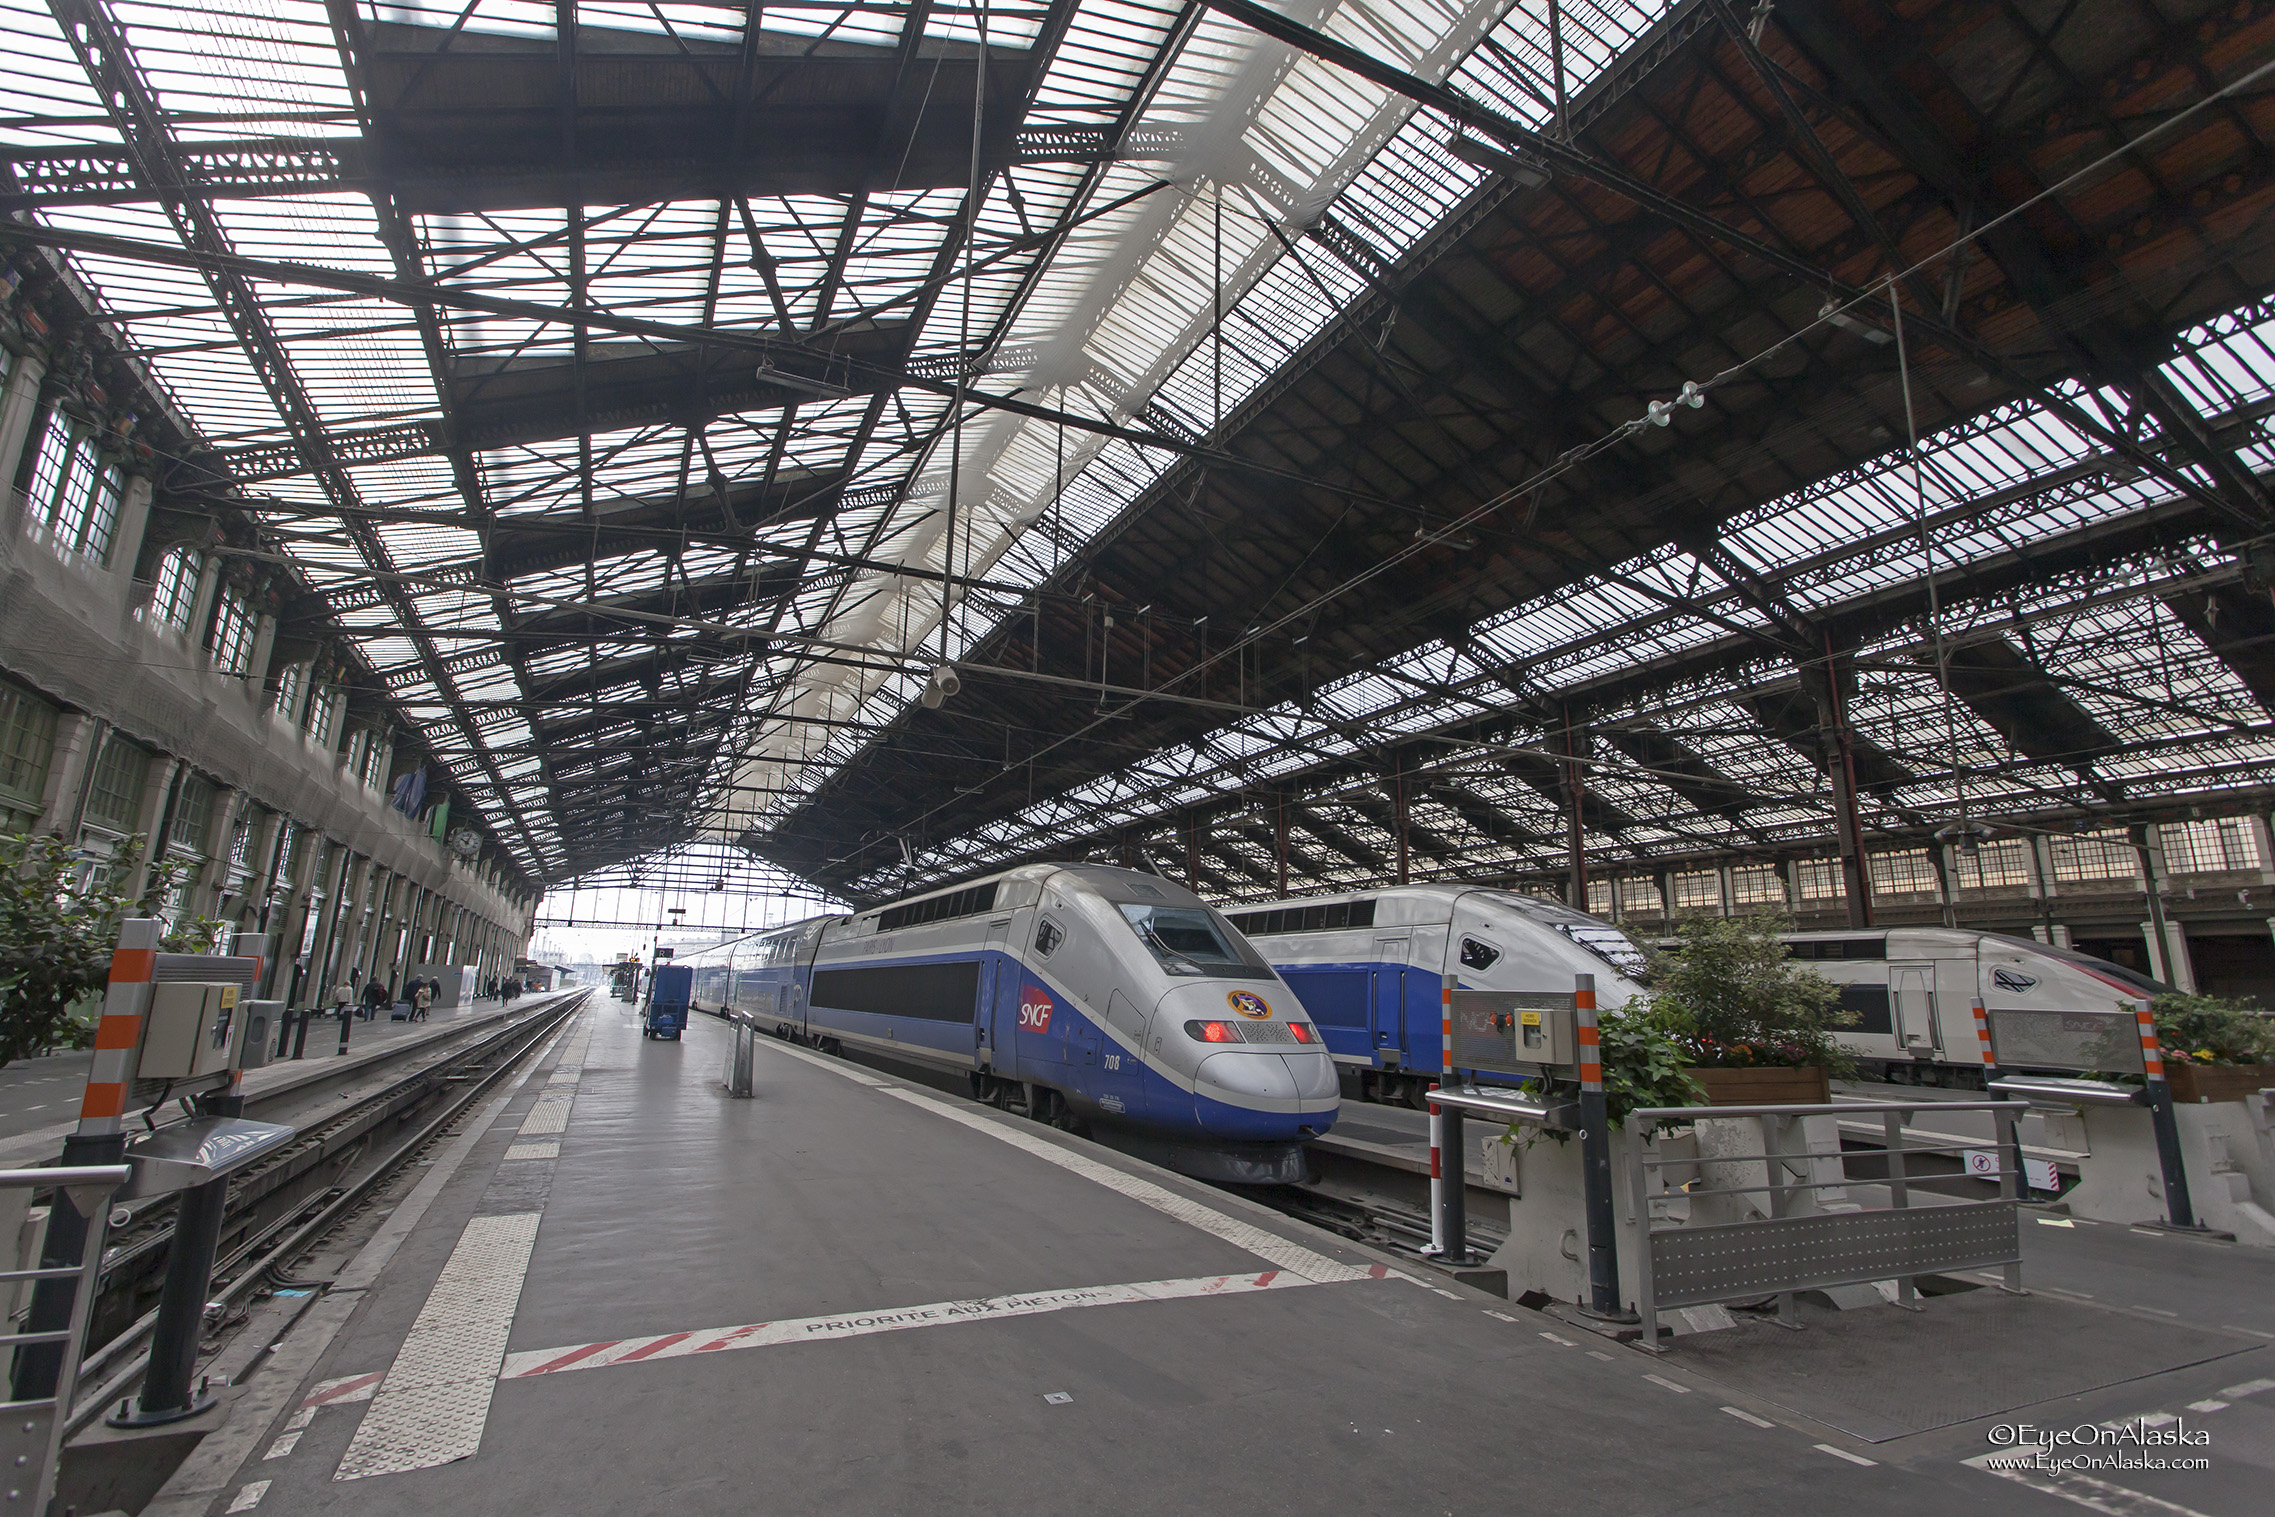 TGV high speed train from Paris to Vesoul on Friday.  Tomorrow, on Saturday morning we go to Scey-sur-Saone to pick up the boat..  Here we go.